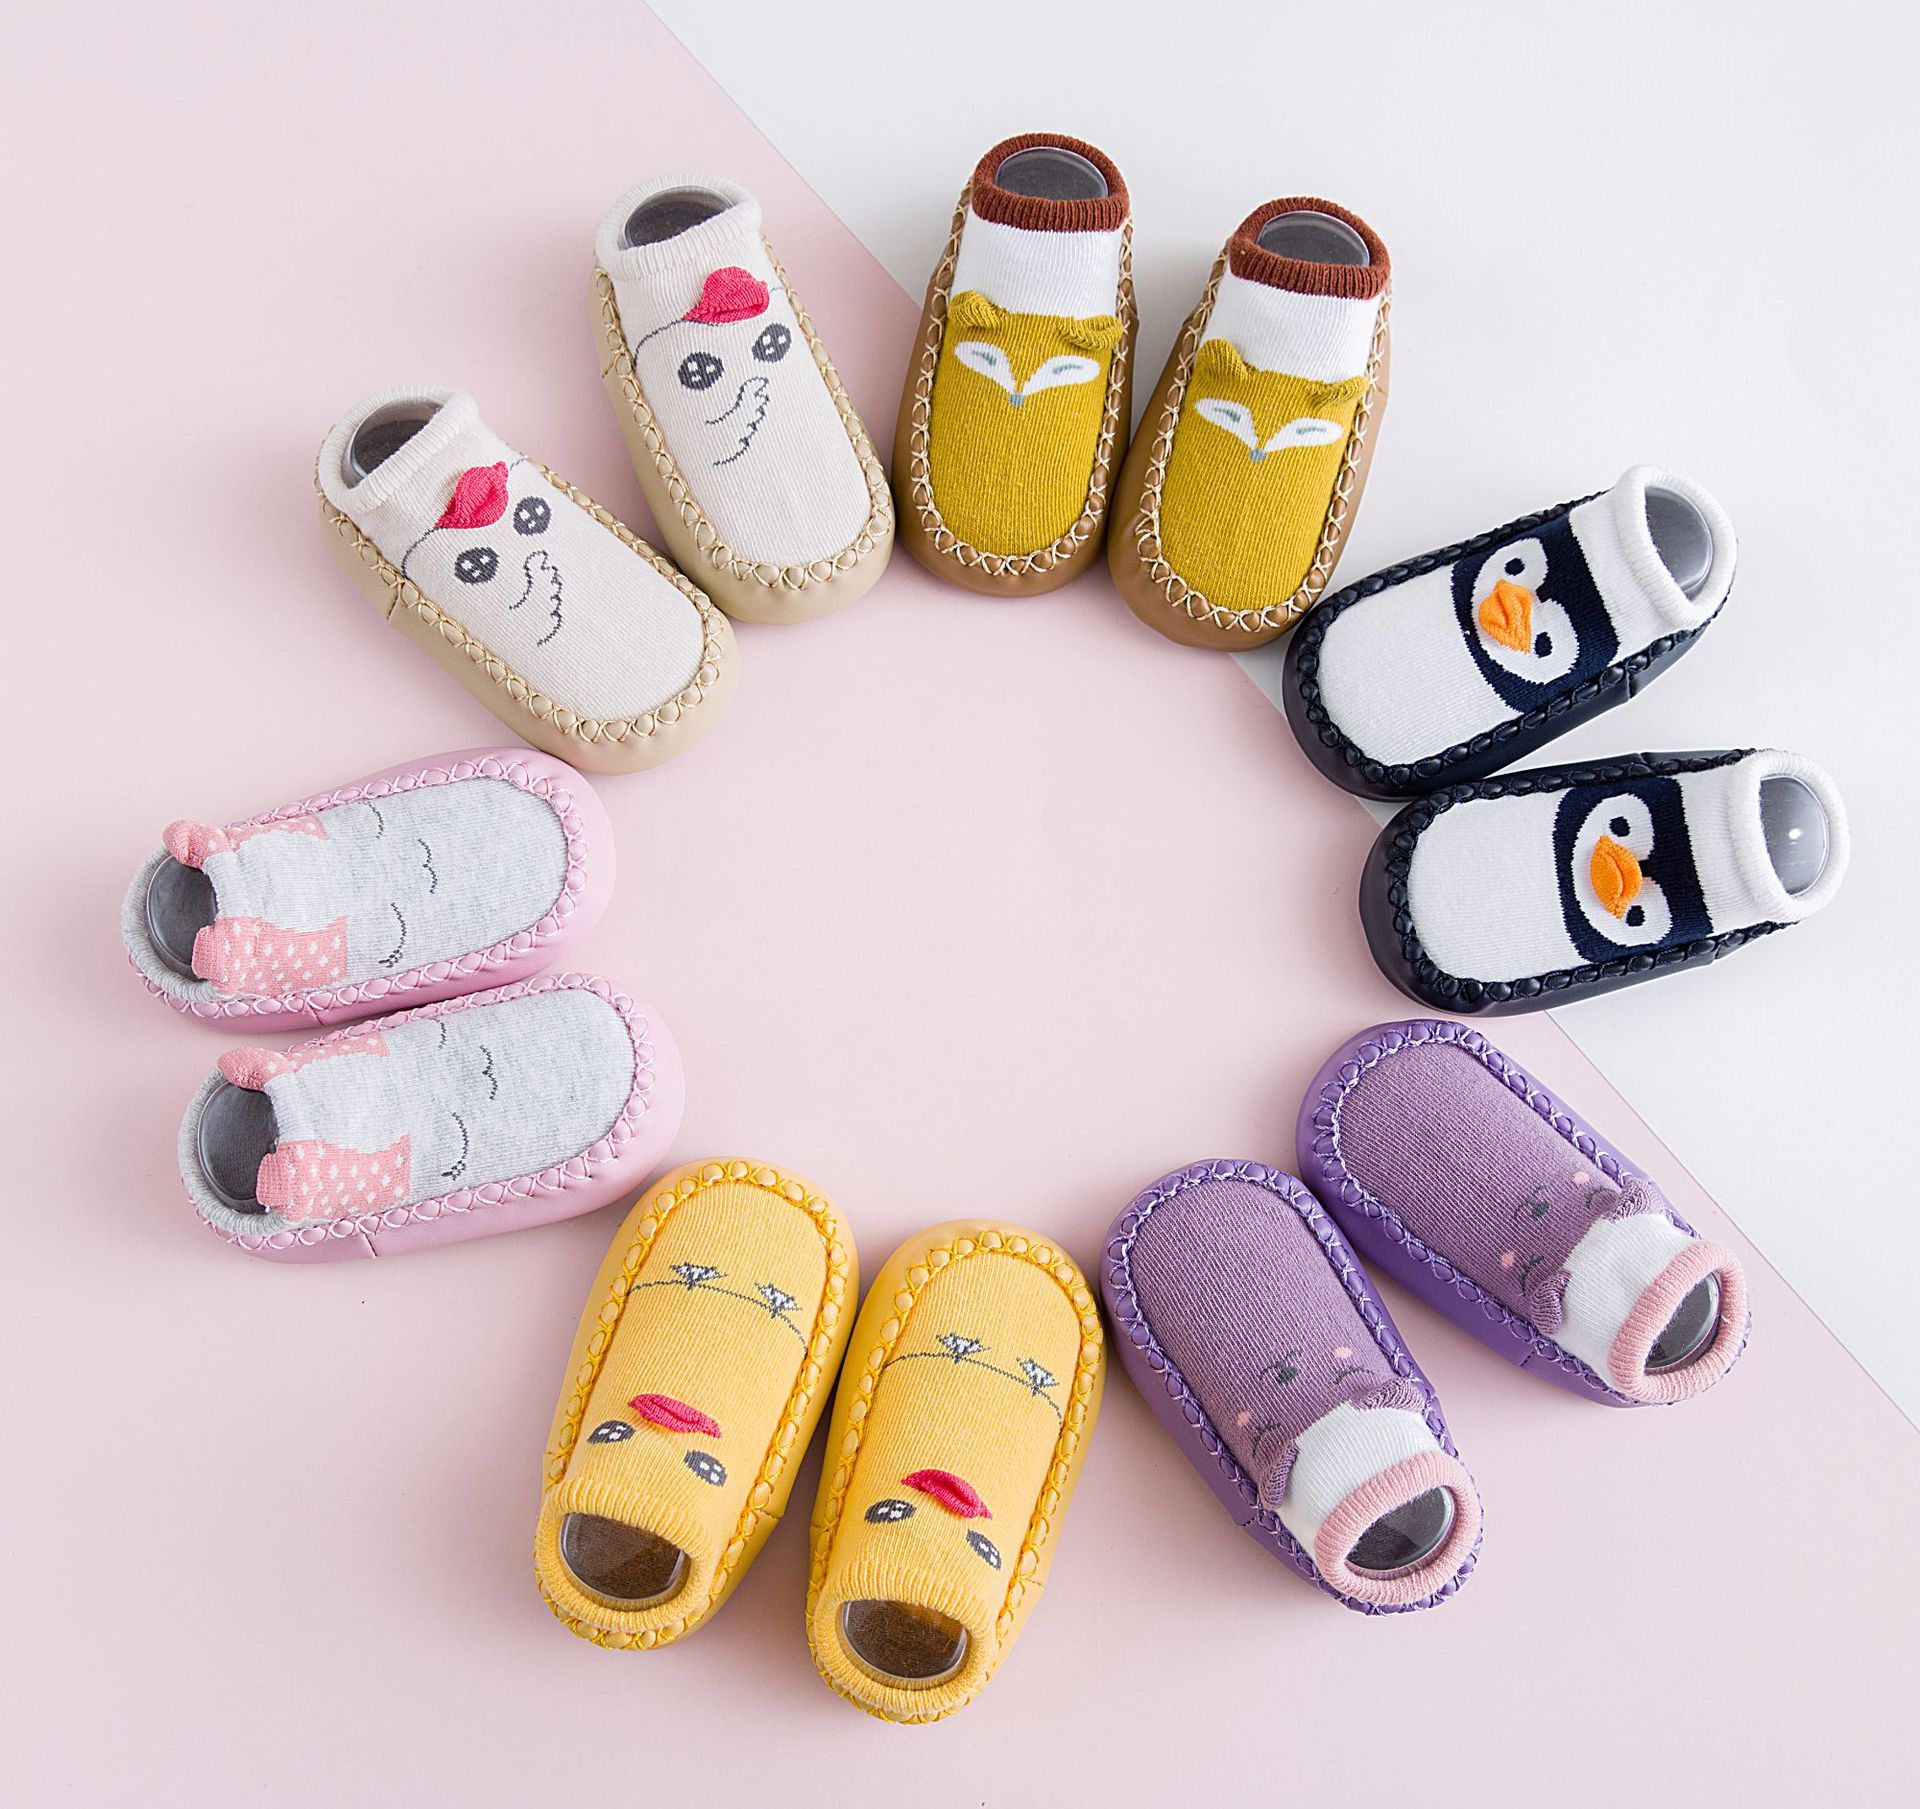 2018 Spring New Cotton Cartoon Baby Socks Kids Non-slip Floor socks Baby Moccasins Baby First Walker Shoes Toddler Socks Shoes winter jackets for girls kids fashion winter coat girls parka coats long thicken jacket 90% duck down warm children clothing